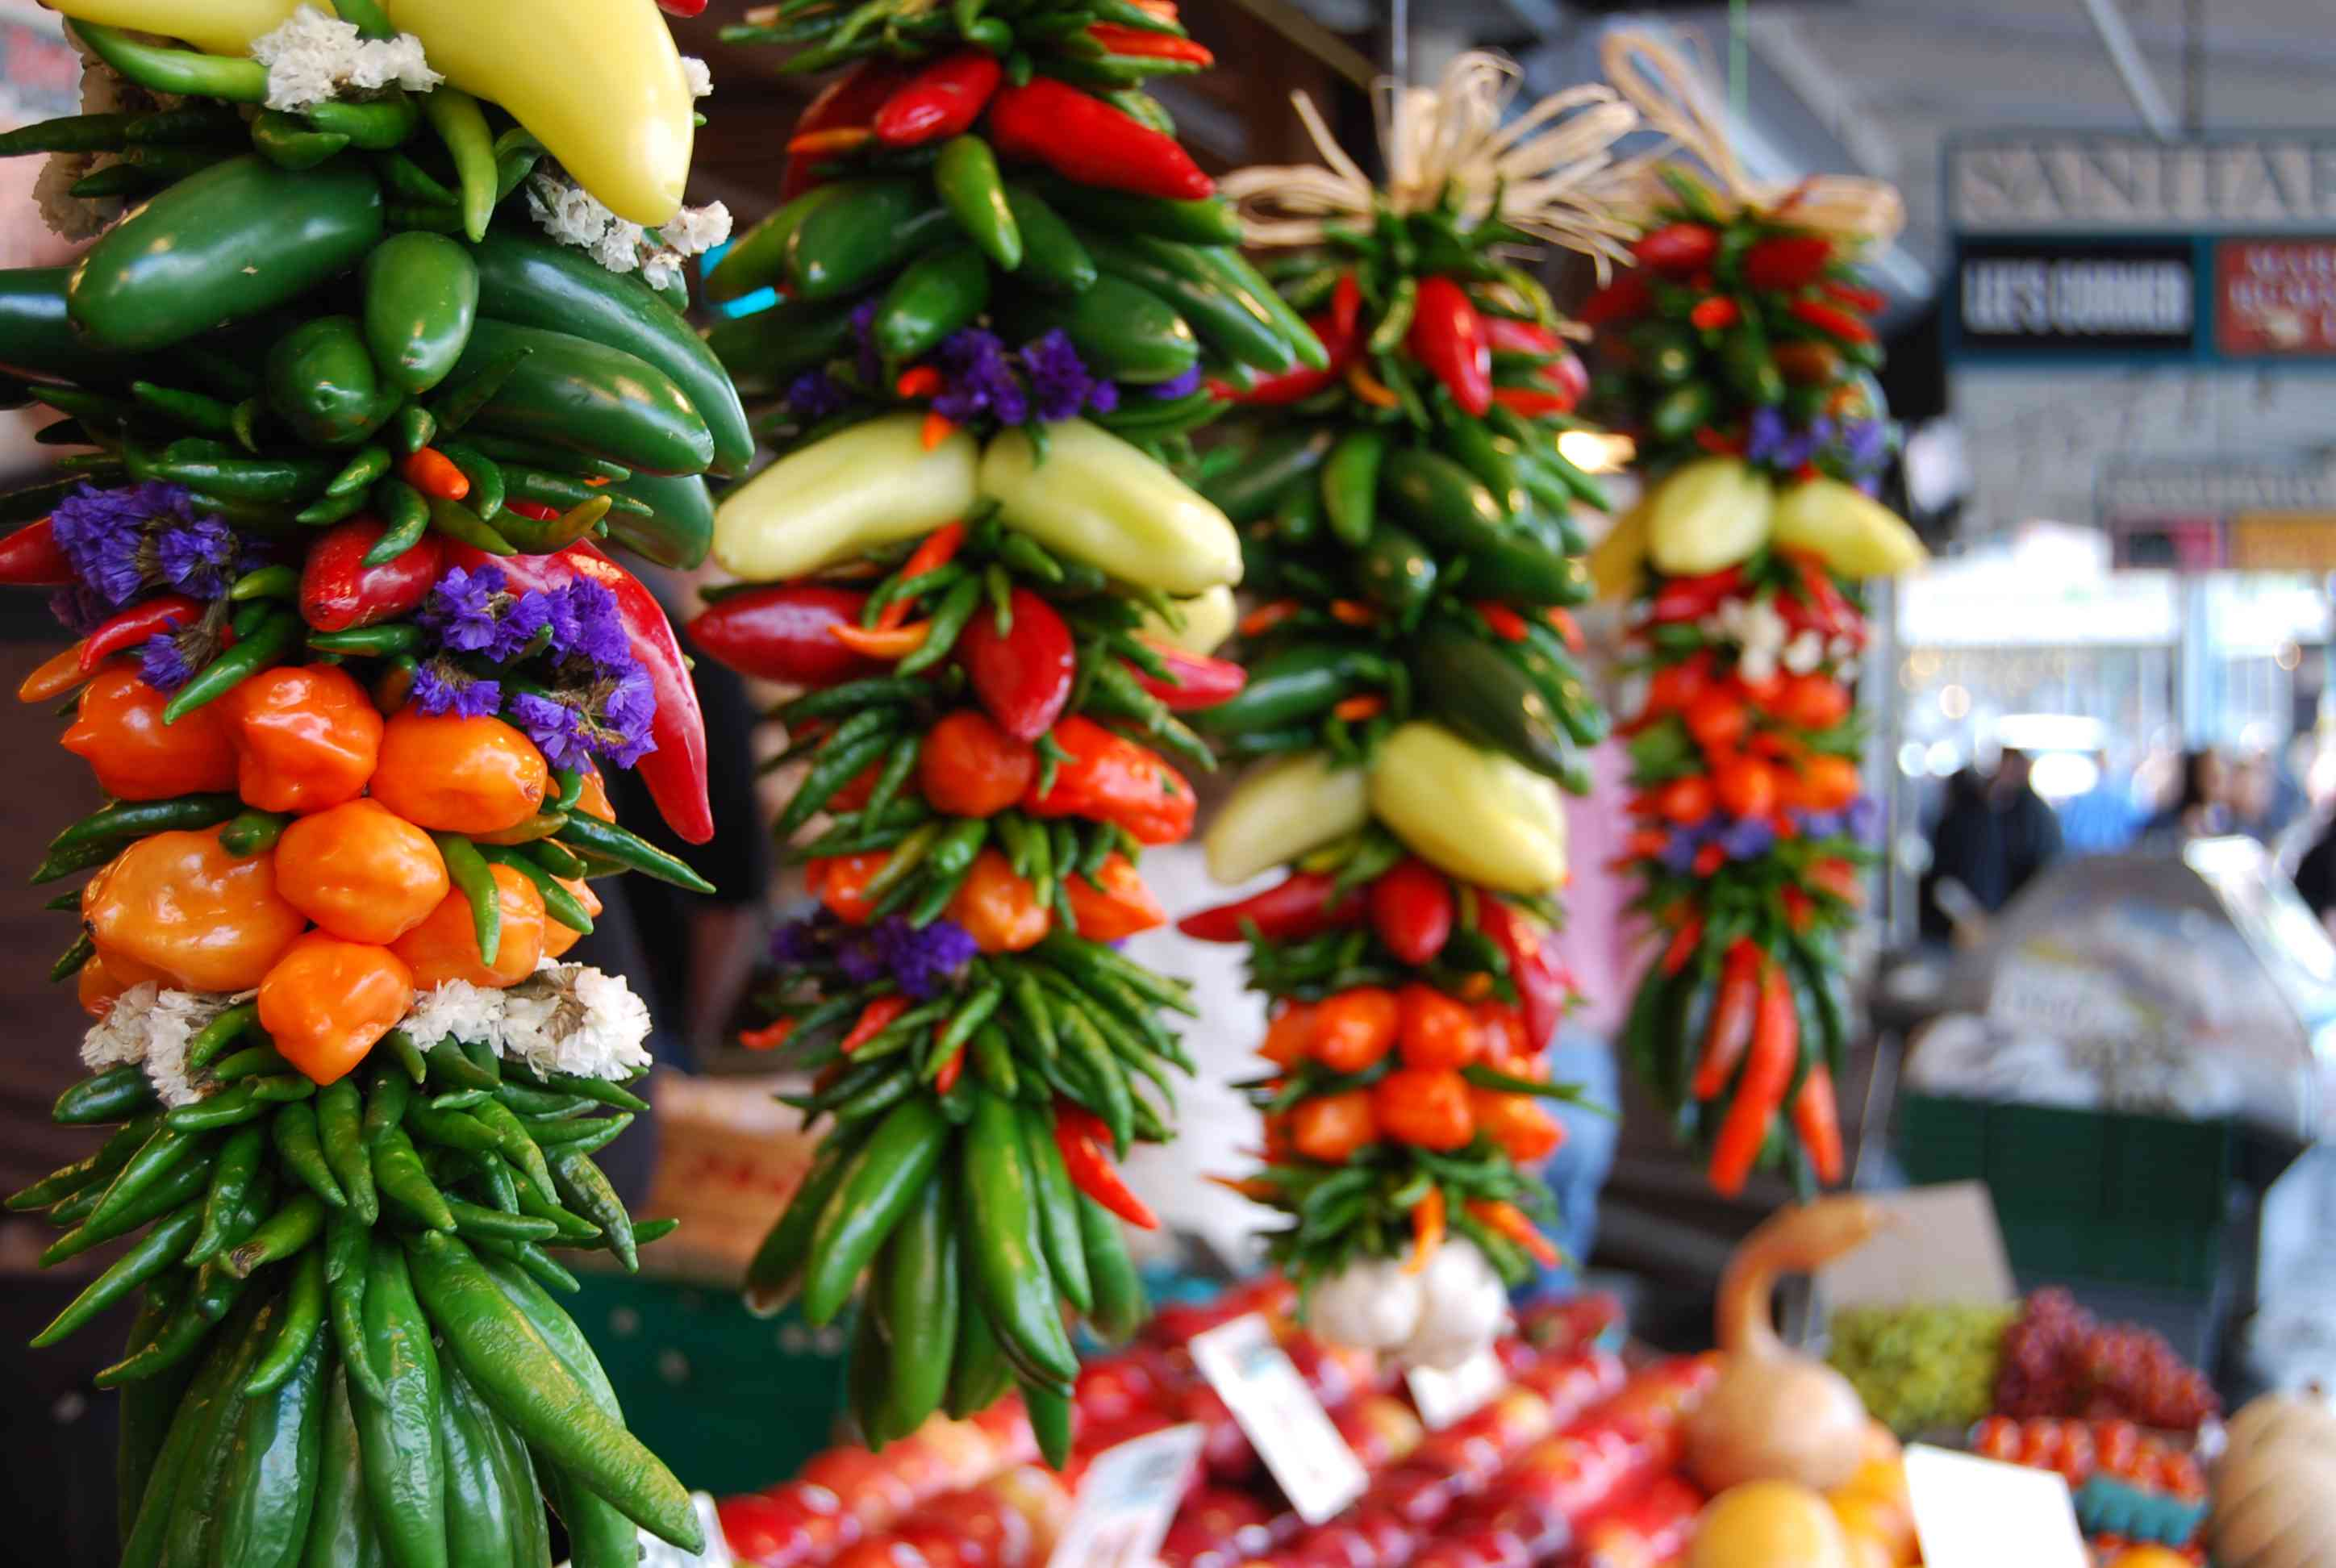 Chiles and peppers for sale at outdoor festival